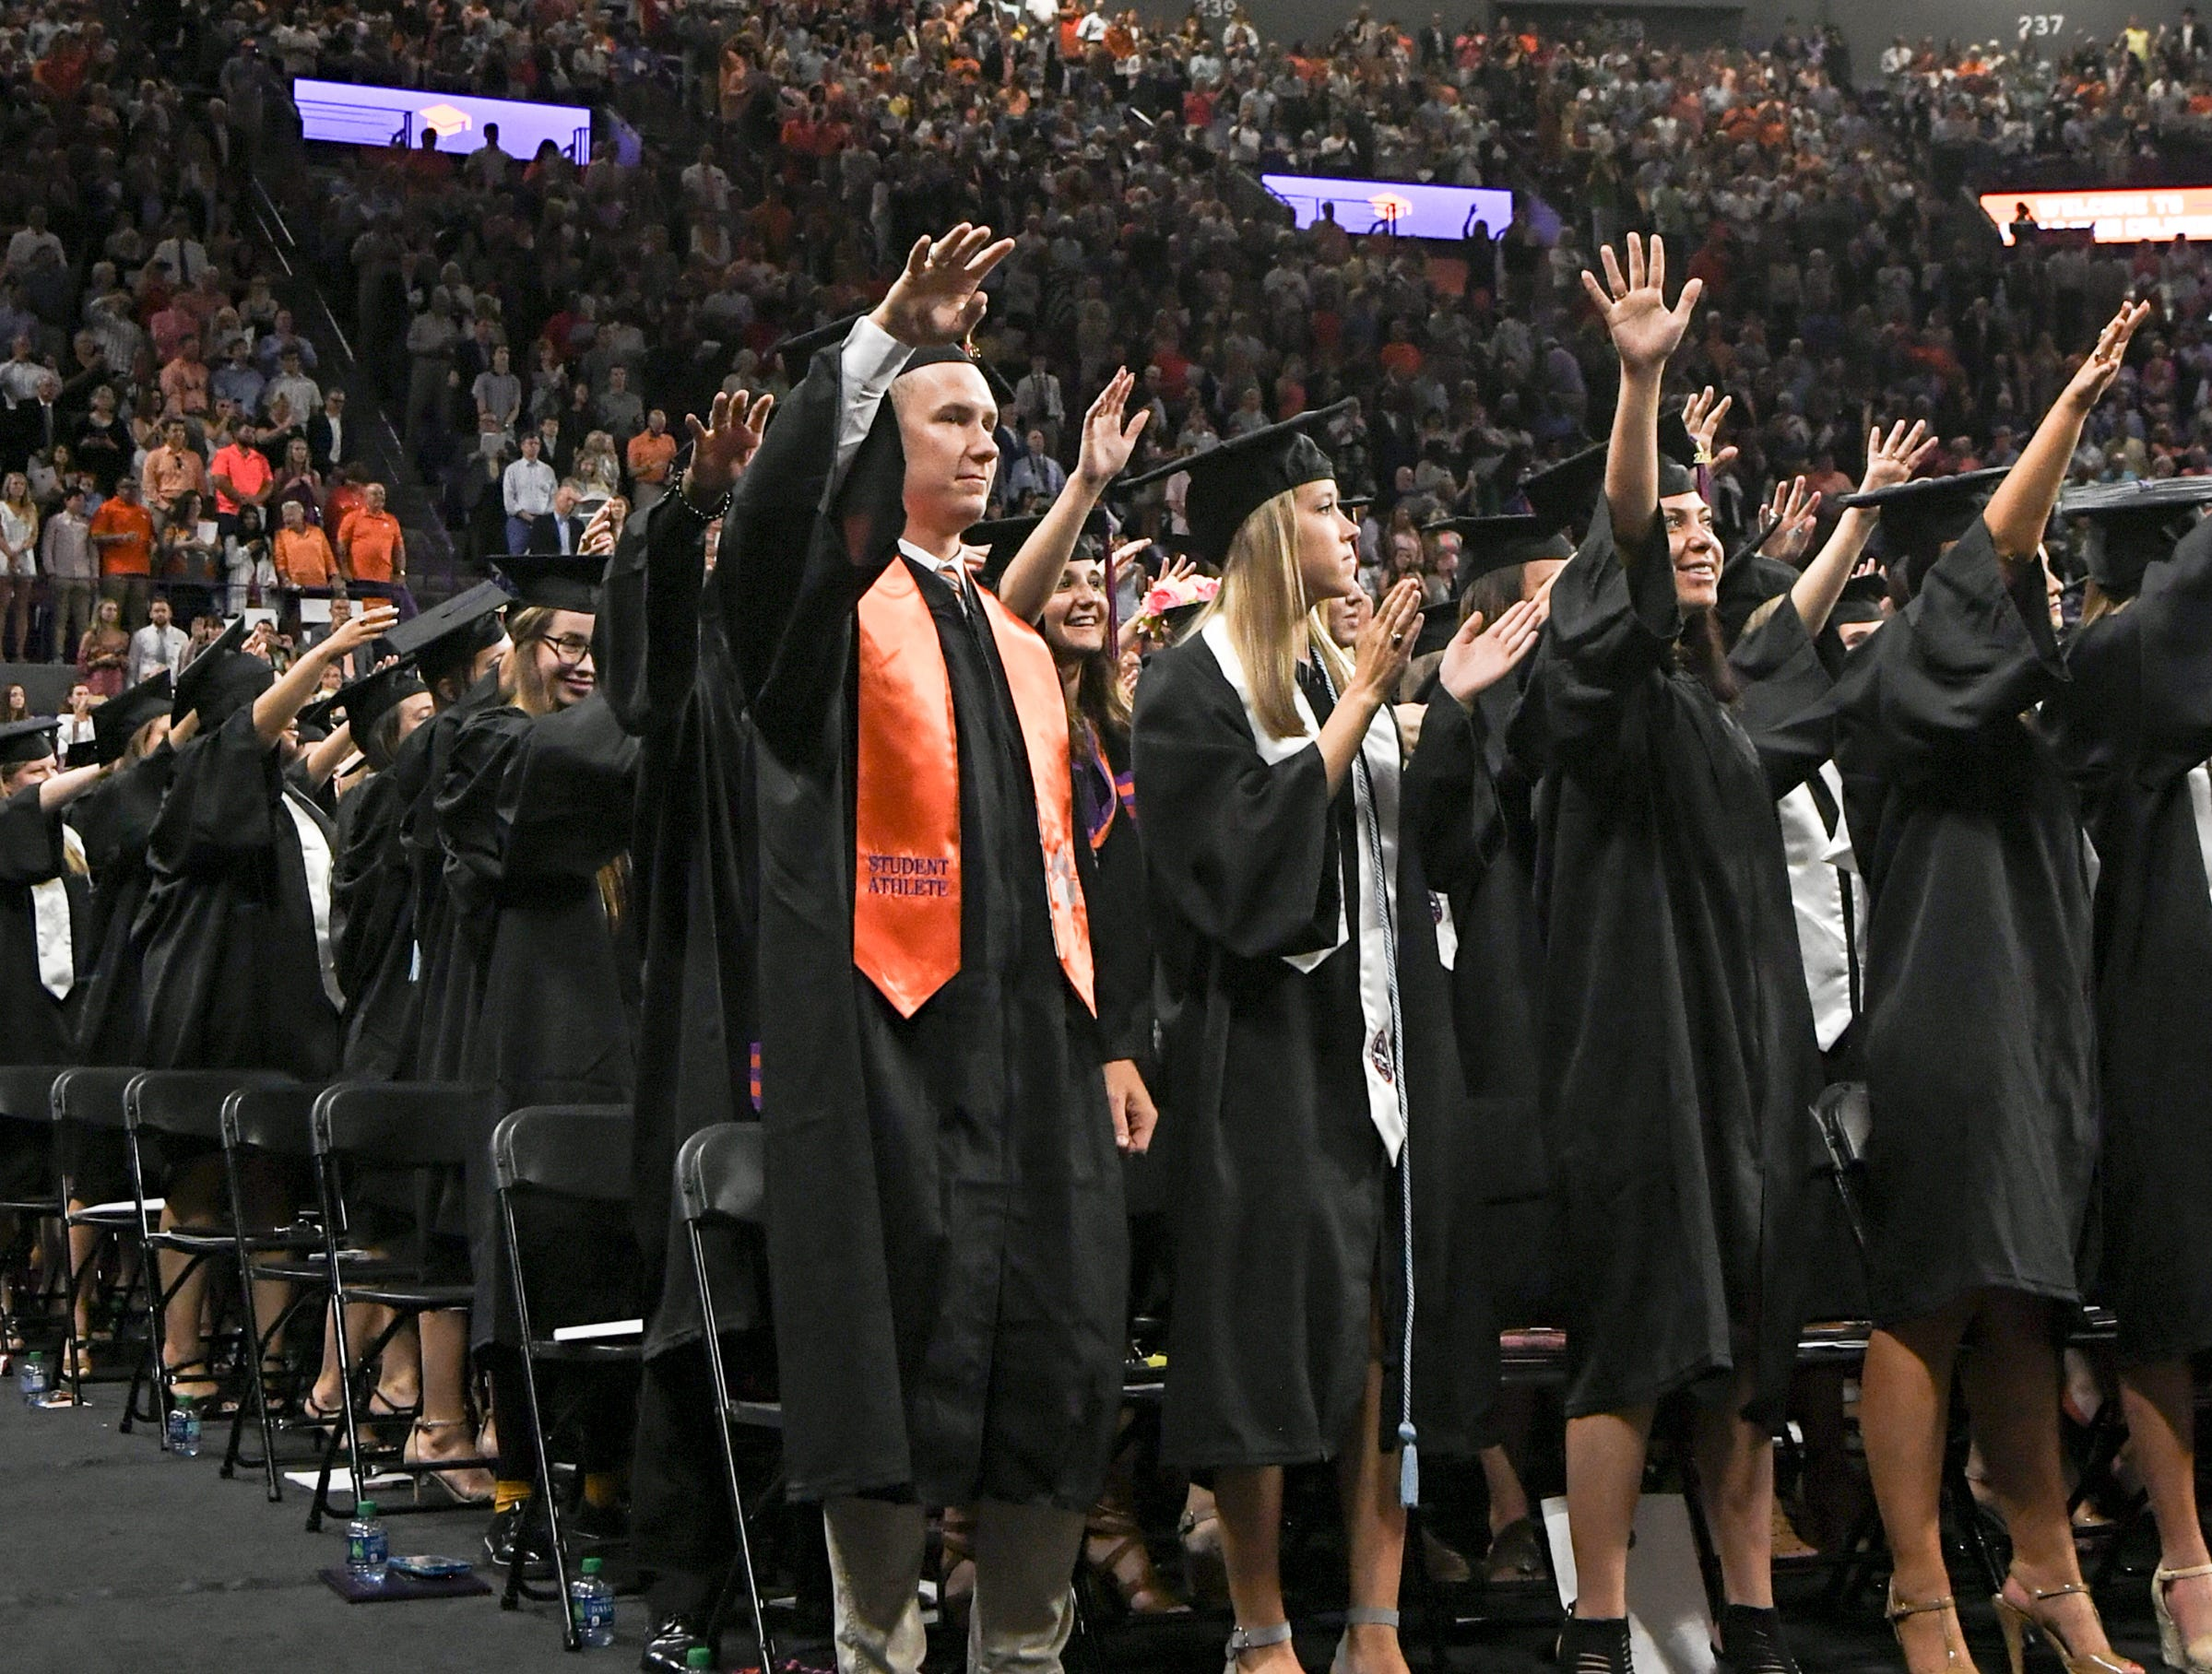 Ryan Mac Lain, a former football player, joins in waving for the alma mater after he earned his Bachelor of Arts in Psychology, during Clemson University commencement ceremonies in Littlejohn Coliseum in Clemson Friday, May 10, 2019.